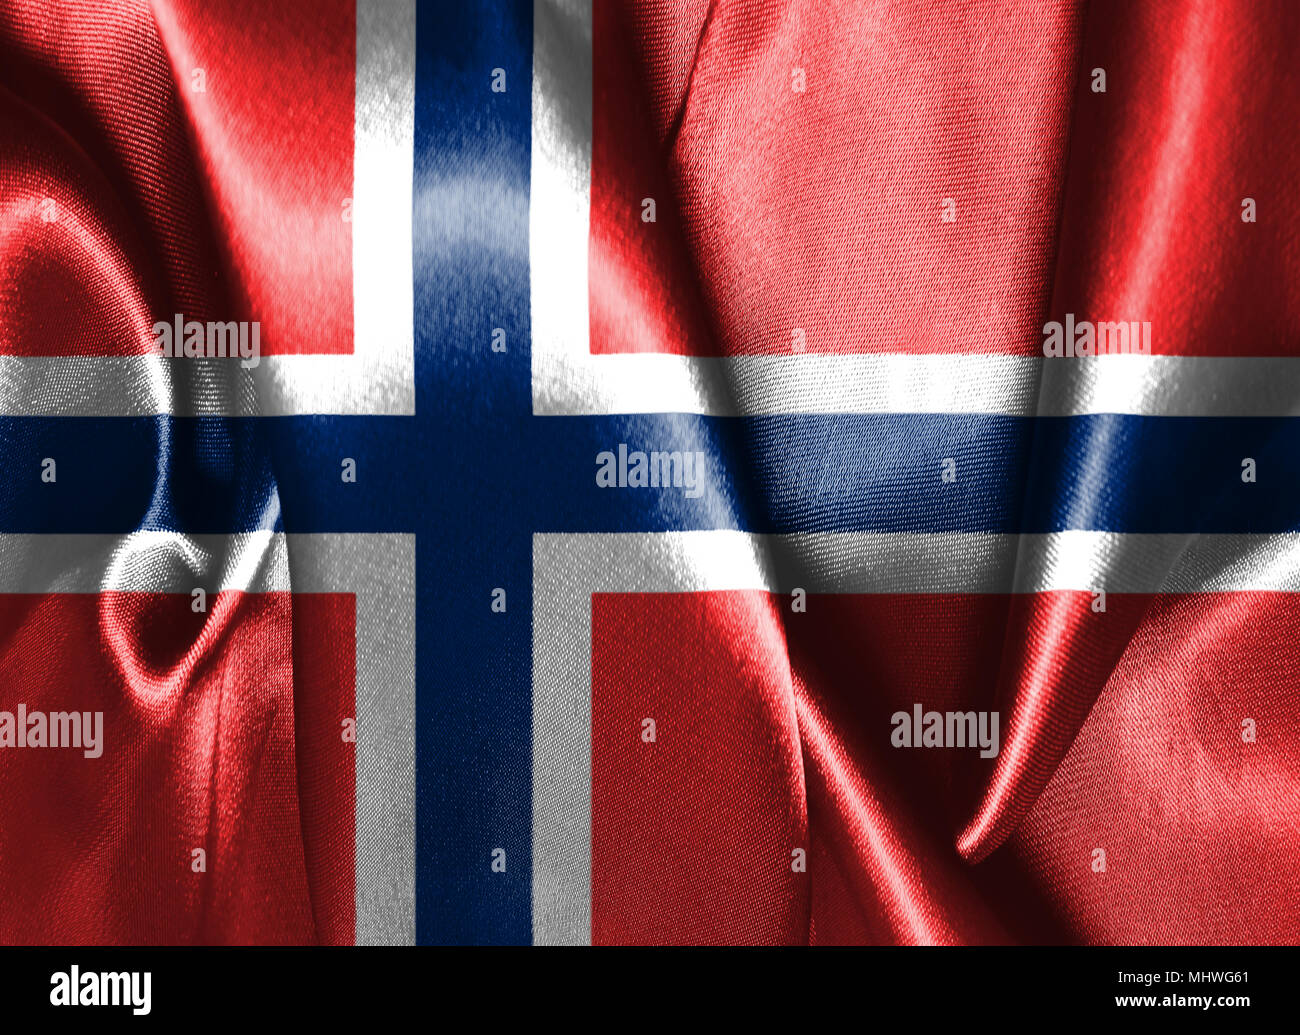 Flag of Norway. Blue Scandinavian Cross Over the Dannebrog, the Flag of Denmark 3D illustration - Stock Image